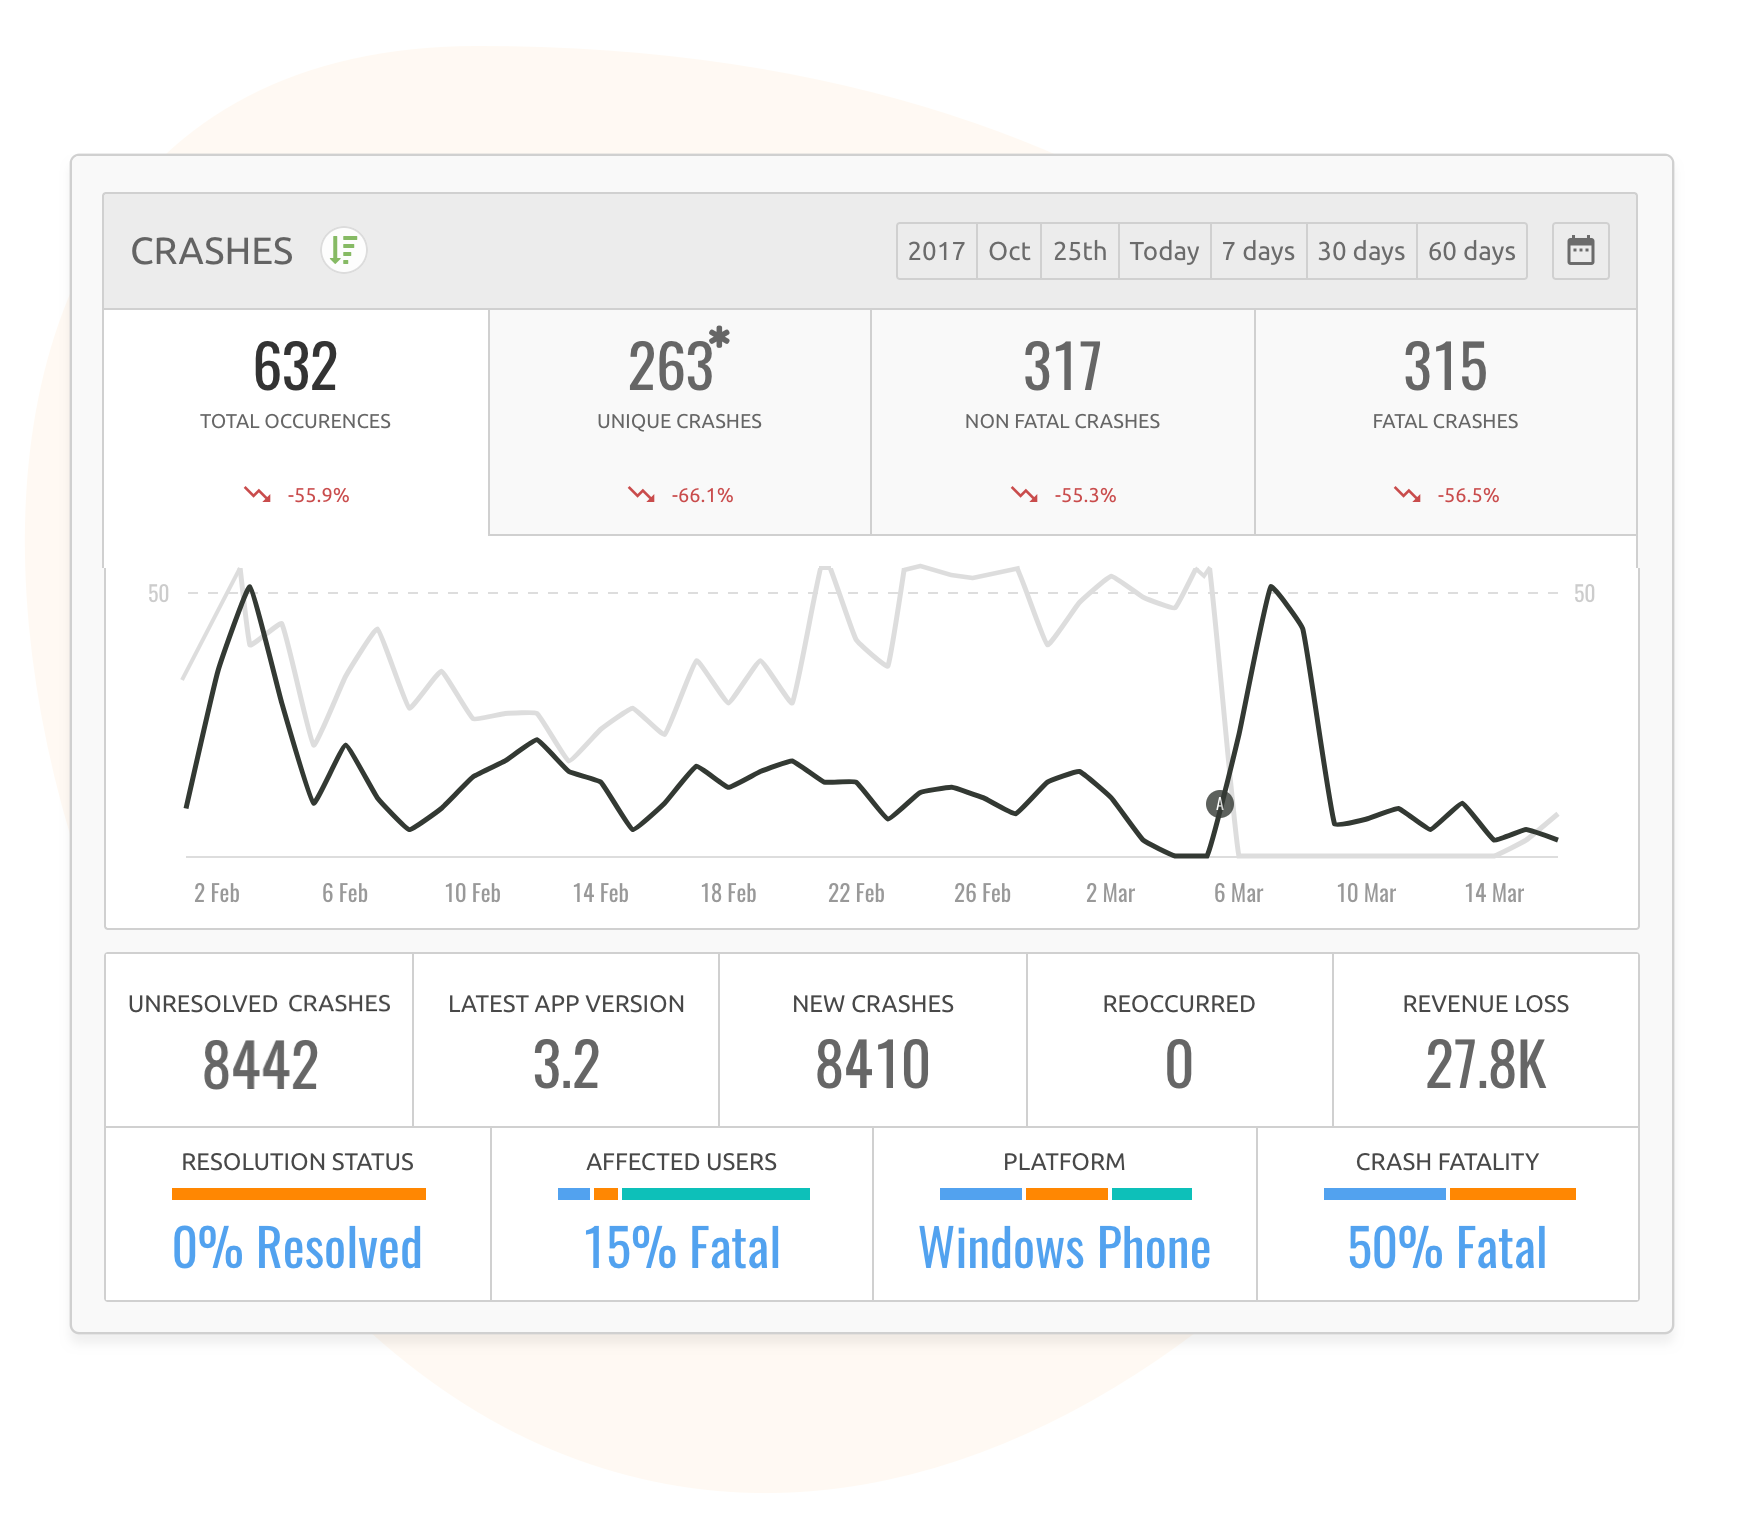 Countly | Product Analytics for Mobile, Web, Desktop and IoT